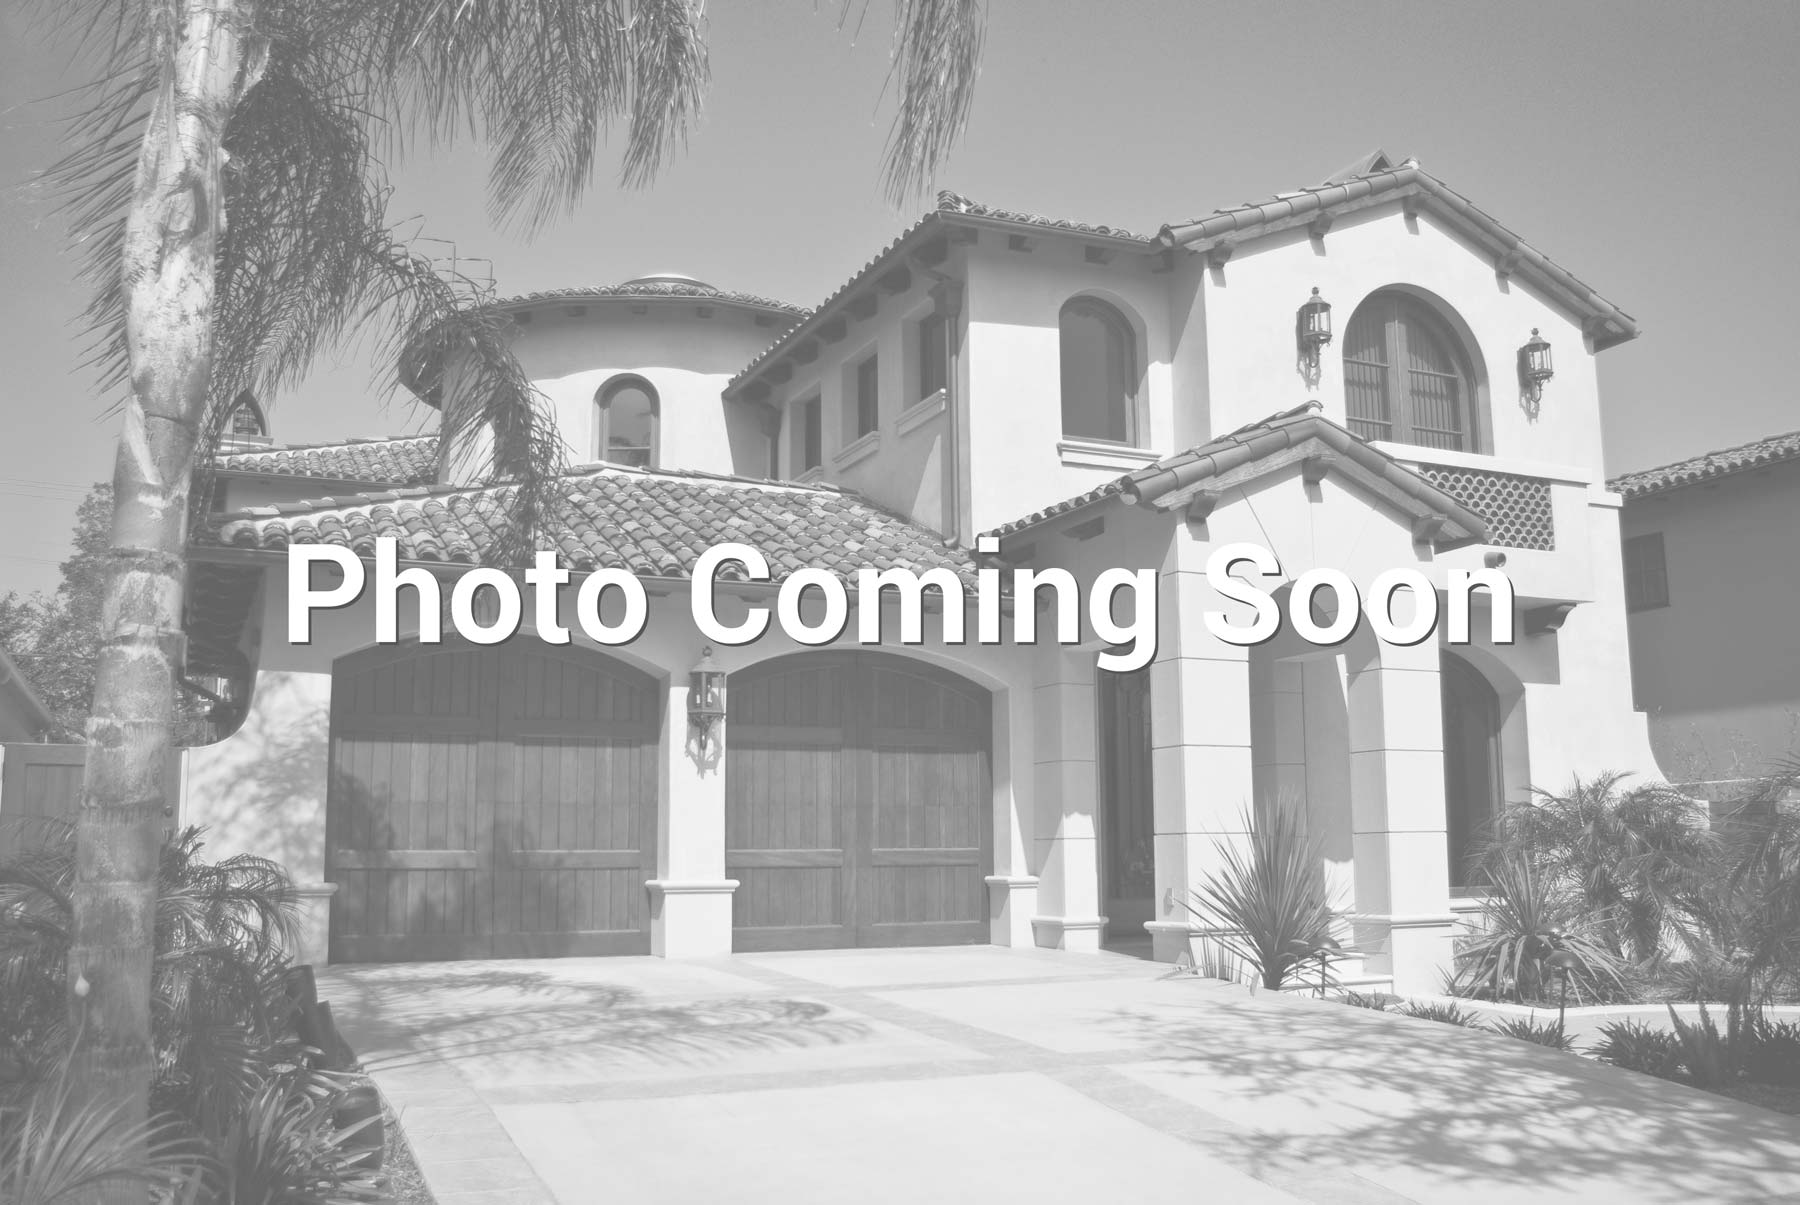 $790,000 - 6Br/6Ba - Home for Sale in Desert Ridge, Phoenix